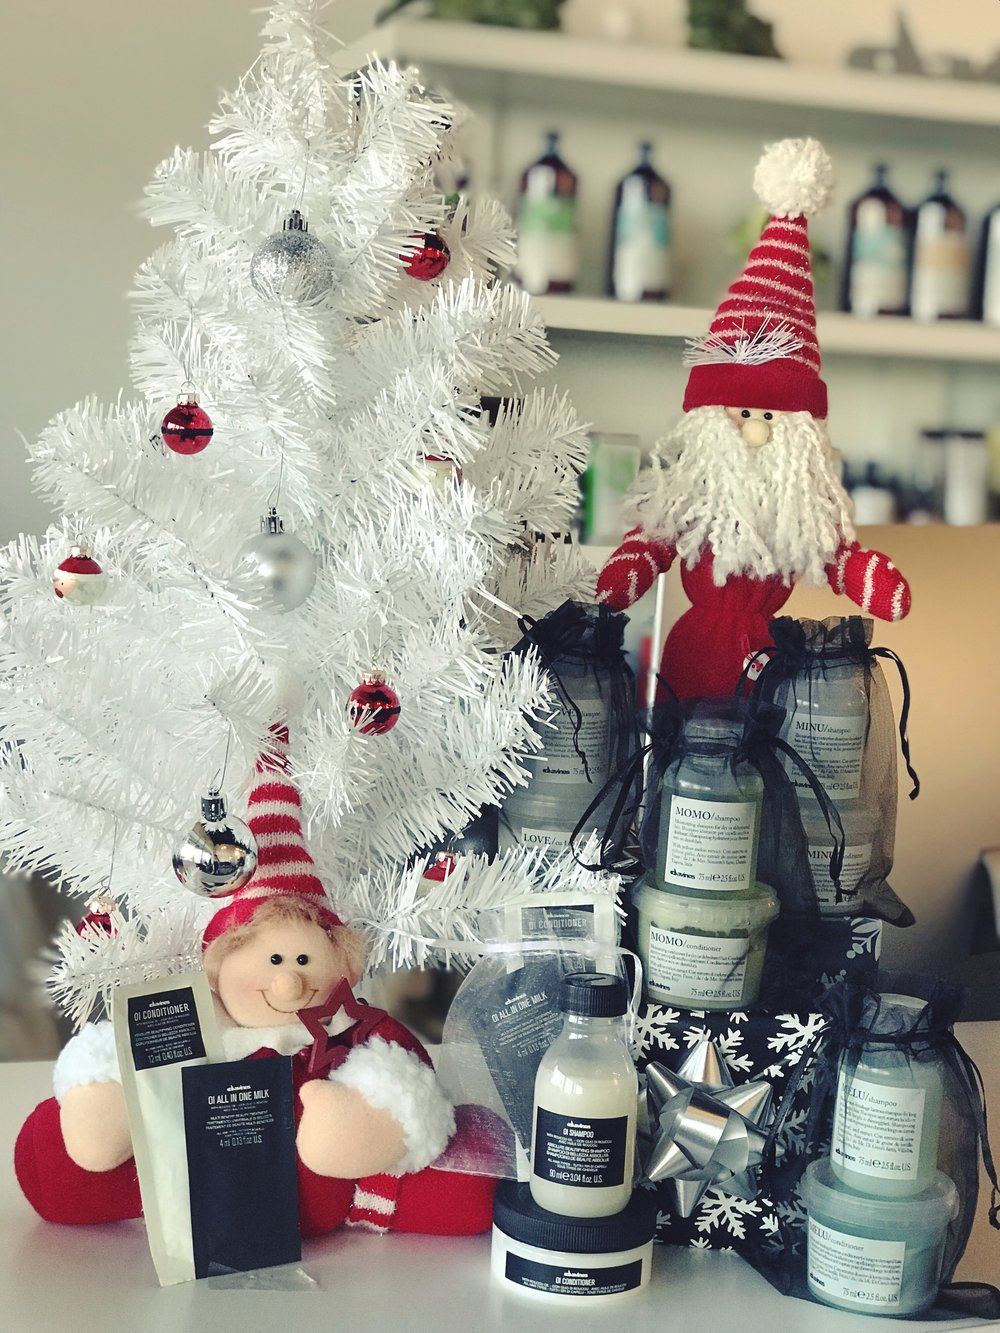 Stop in STAIY SALON and grab some Davines' mini Shampoo & Conditioner travel sets or the mini Oi Shampoo & Conditioner travel set, as stocking stuffers or as a simple cute gift for your family & friends! Or why not grab them both?!   #davinessalon #davinesconceptsalon #StockingStuffers #Gifts @davinesnorthamerica @davinesoffical